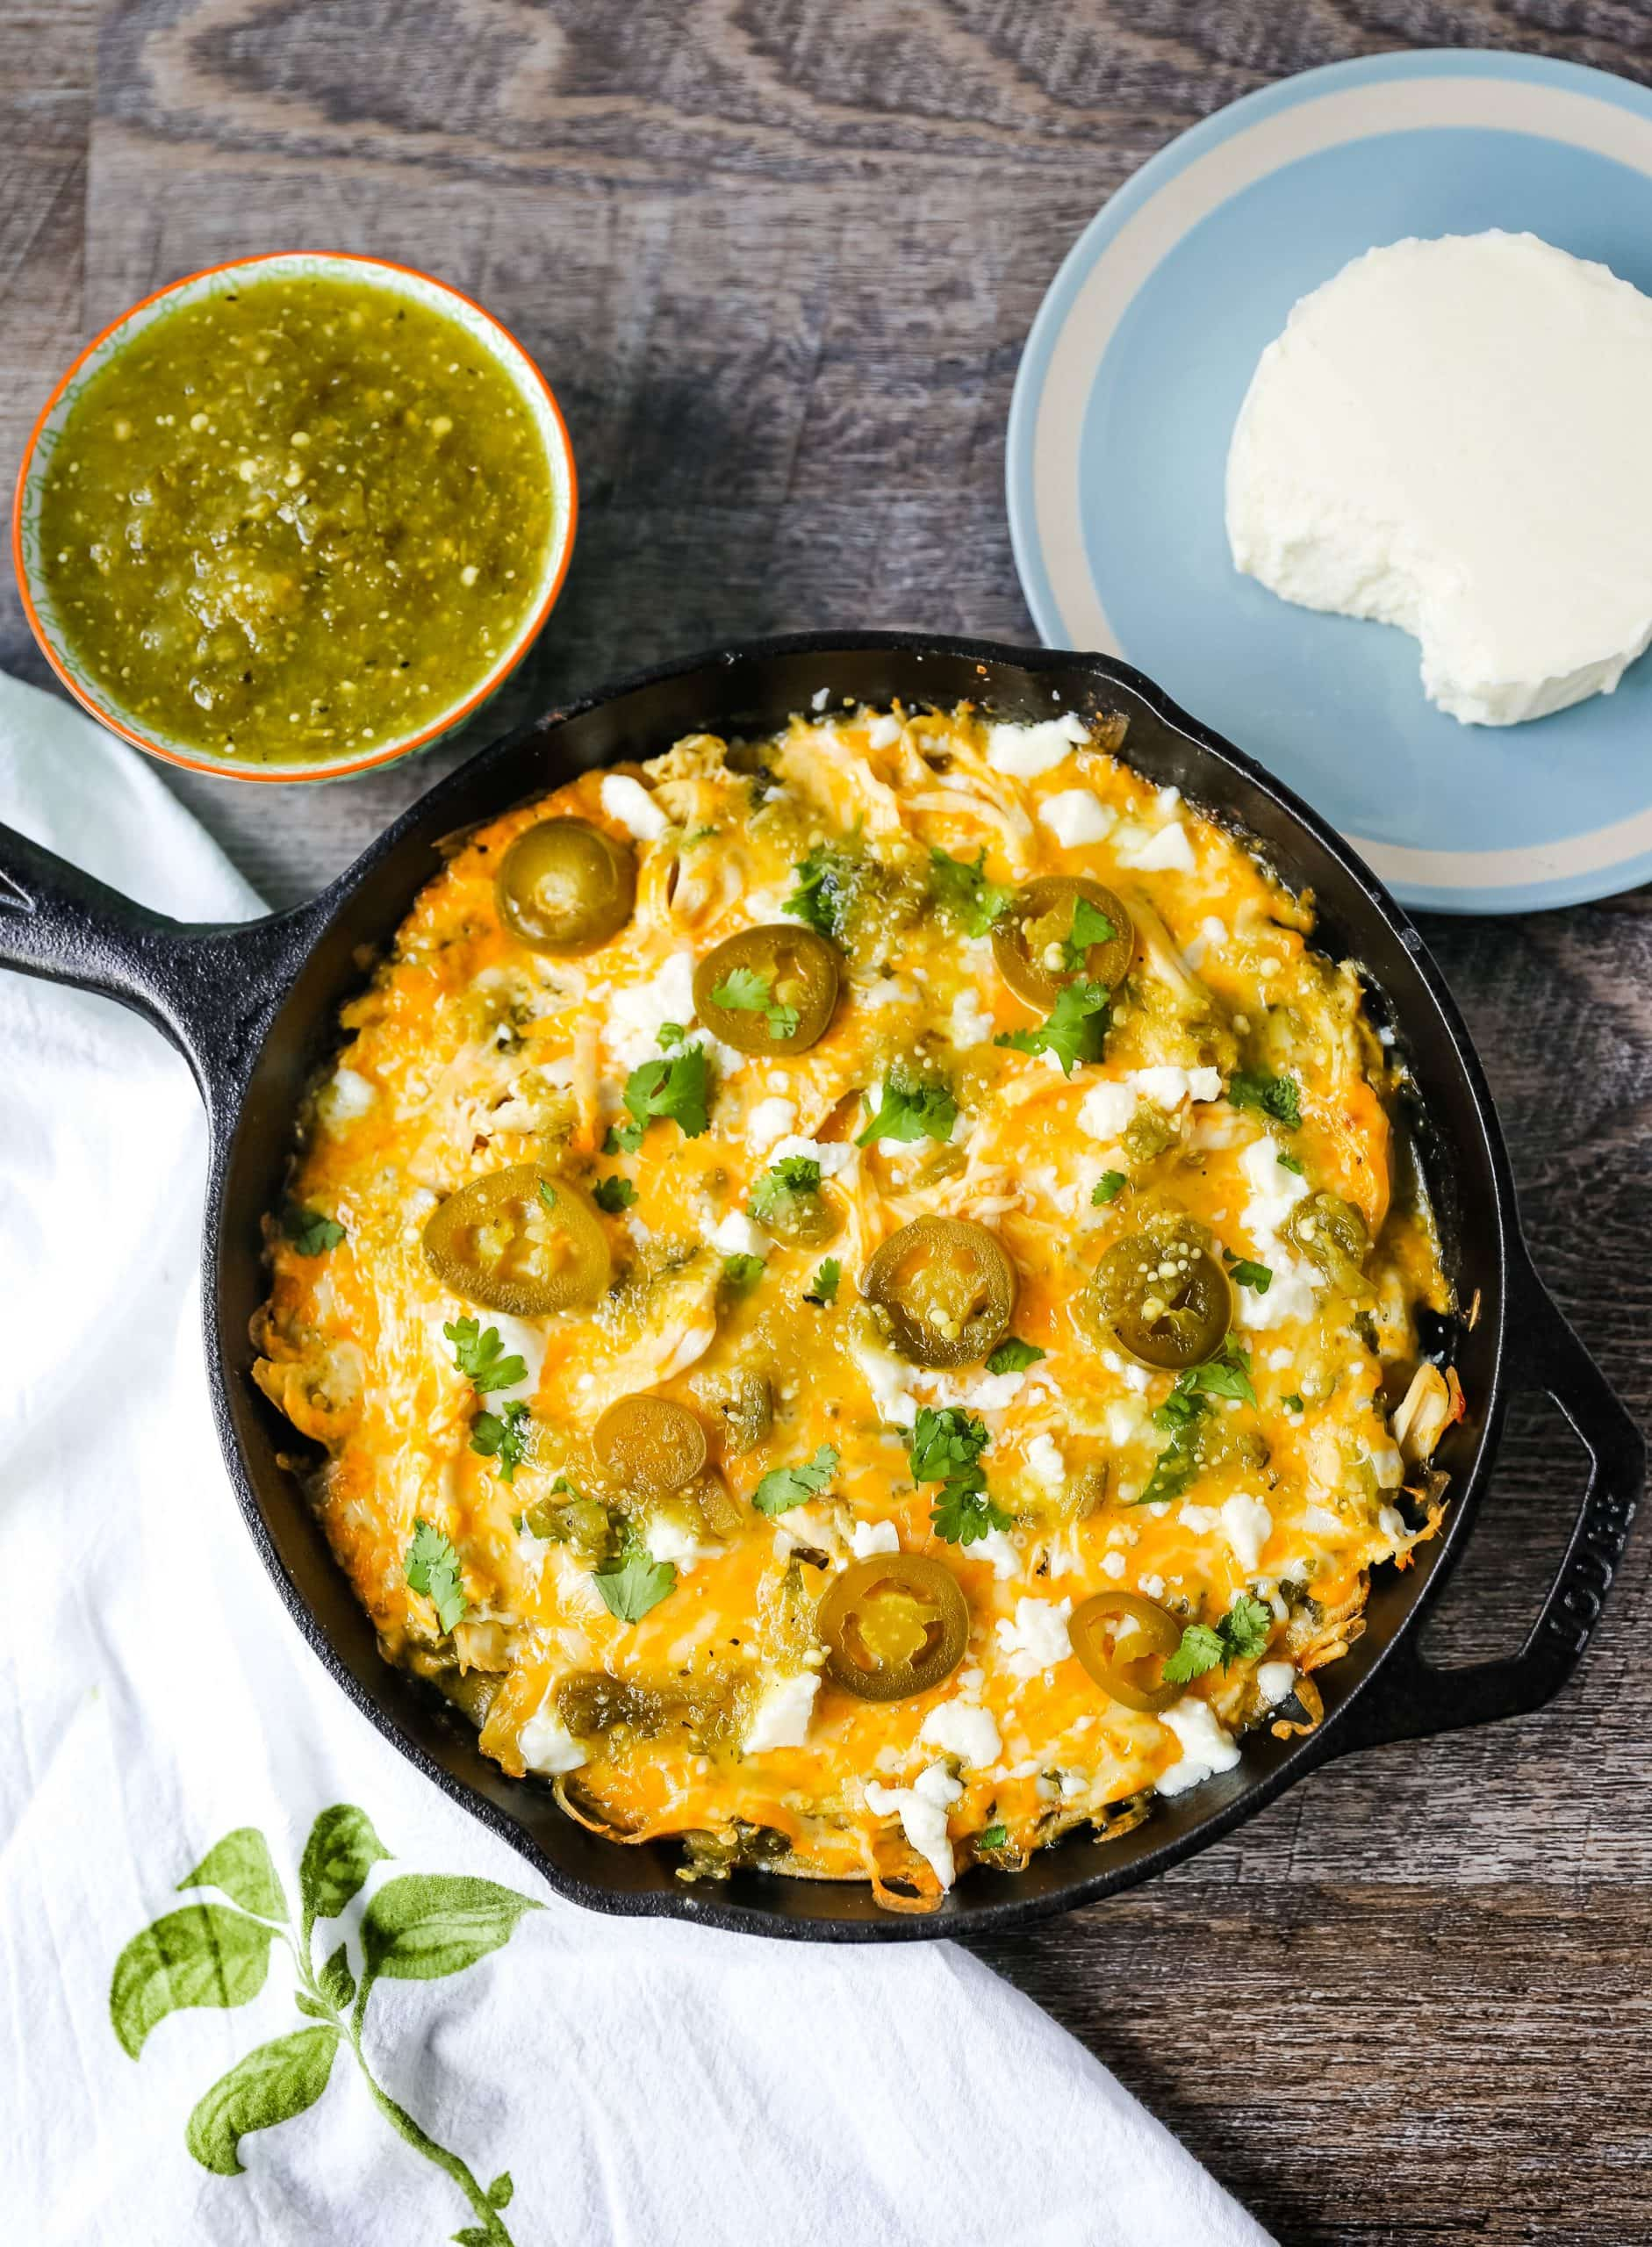 Chicken Stacked Enchiladas Quick and easy stacked chicken enchiladas with salsa verde and Mexican cheeses. Authentic Mexican chicken enchiladas that can be thrown together in a snap! The best stacked chicken enchiladas recipe. www.modernhoney.com #enchiladas #mexicanfood #chicken #chickenenchiladas